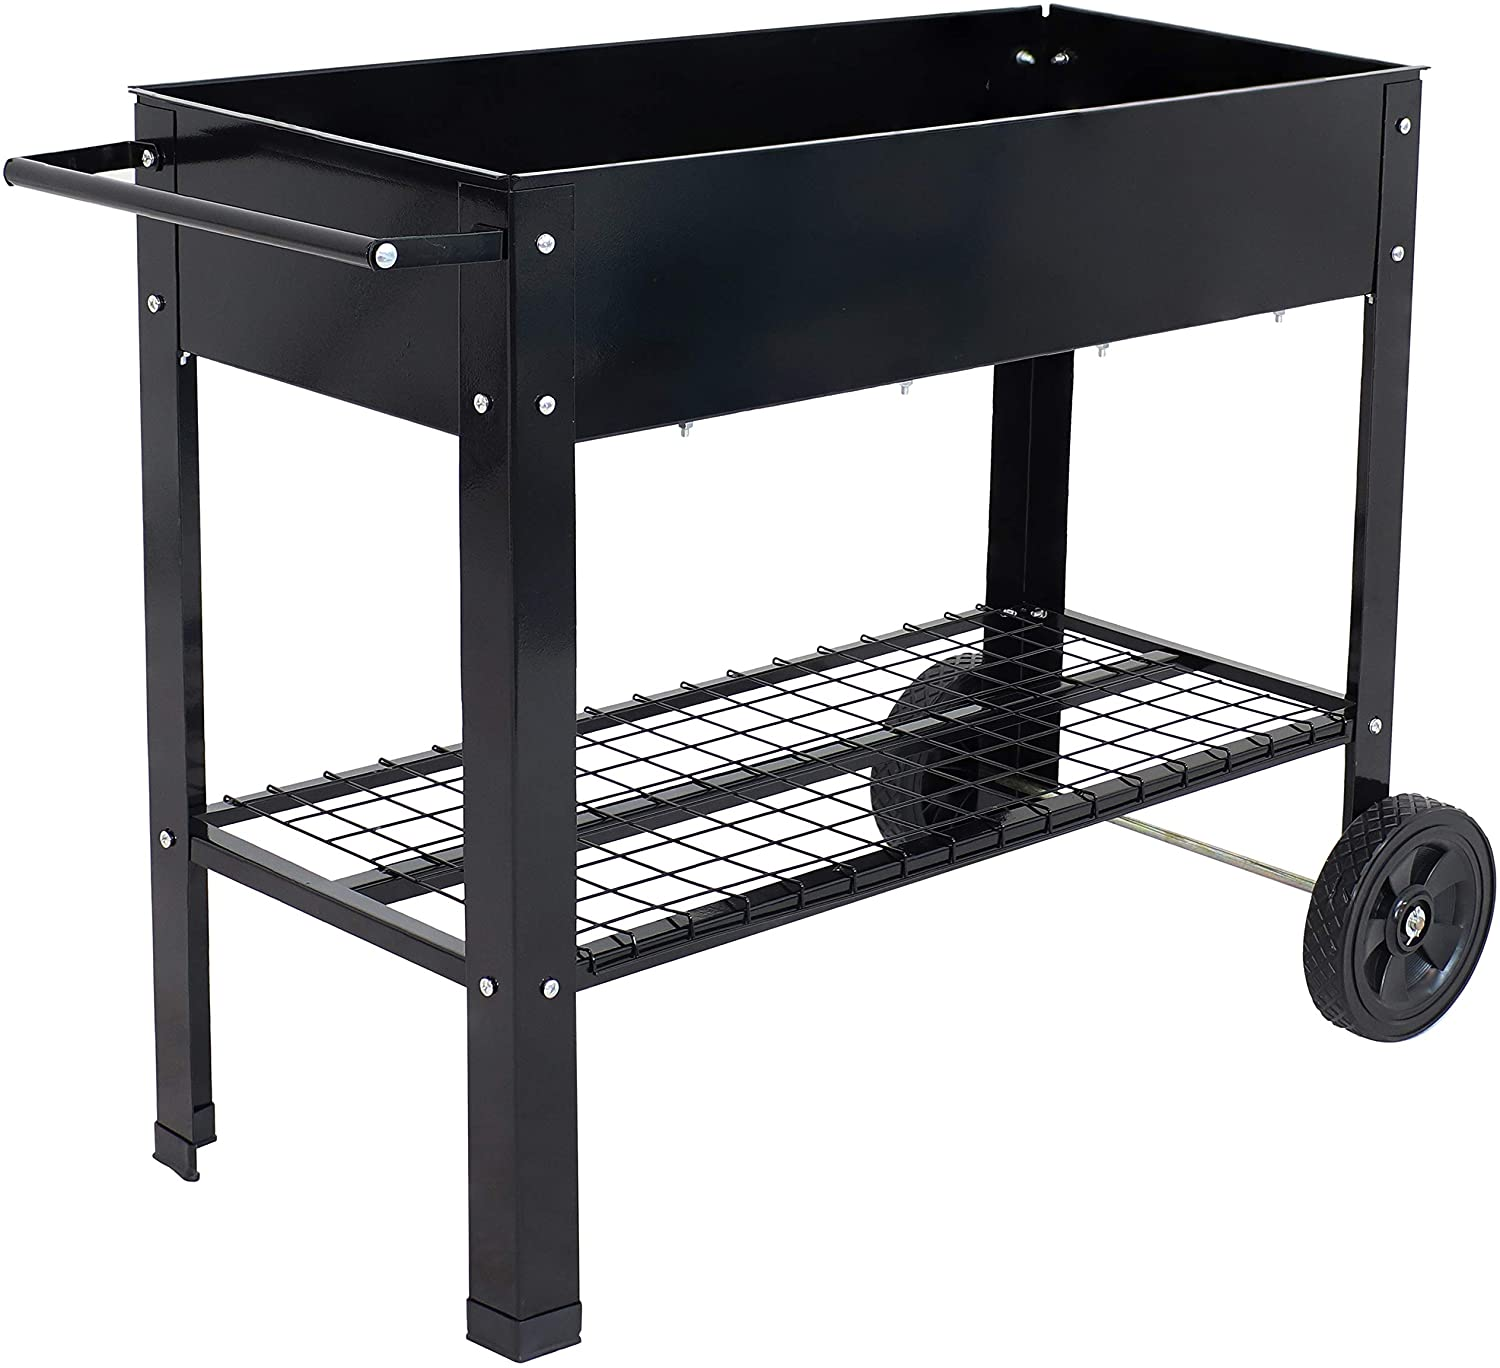 Sunnydaze Raised Garden Bed with Handlebar and Wheels - Galvanized Steel - Outdoor Mobile Elevated Planter Box Cart - 43-Inch - Grow Vegetables and Plants on The Patio, Deck, or Yard - Black